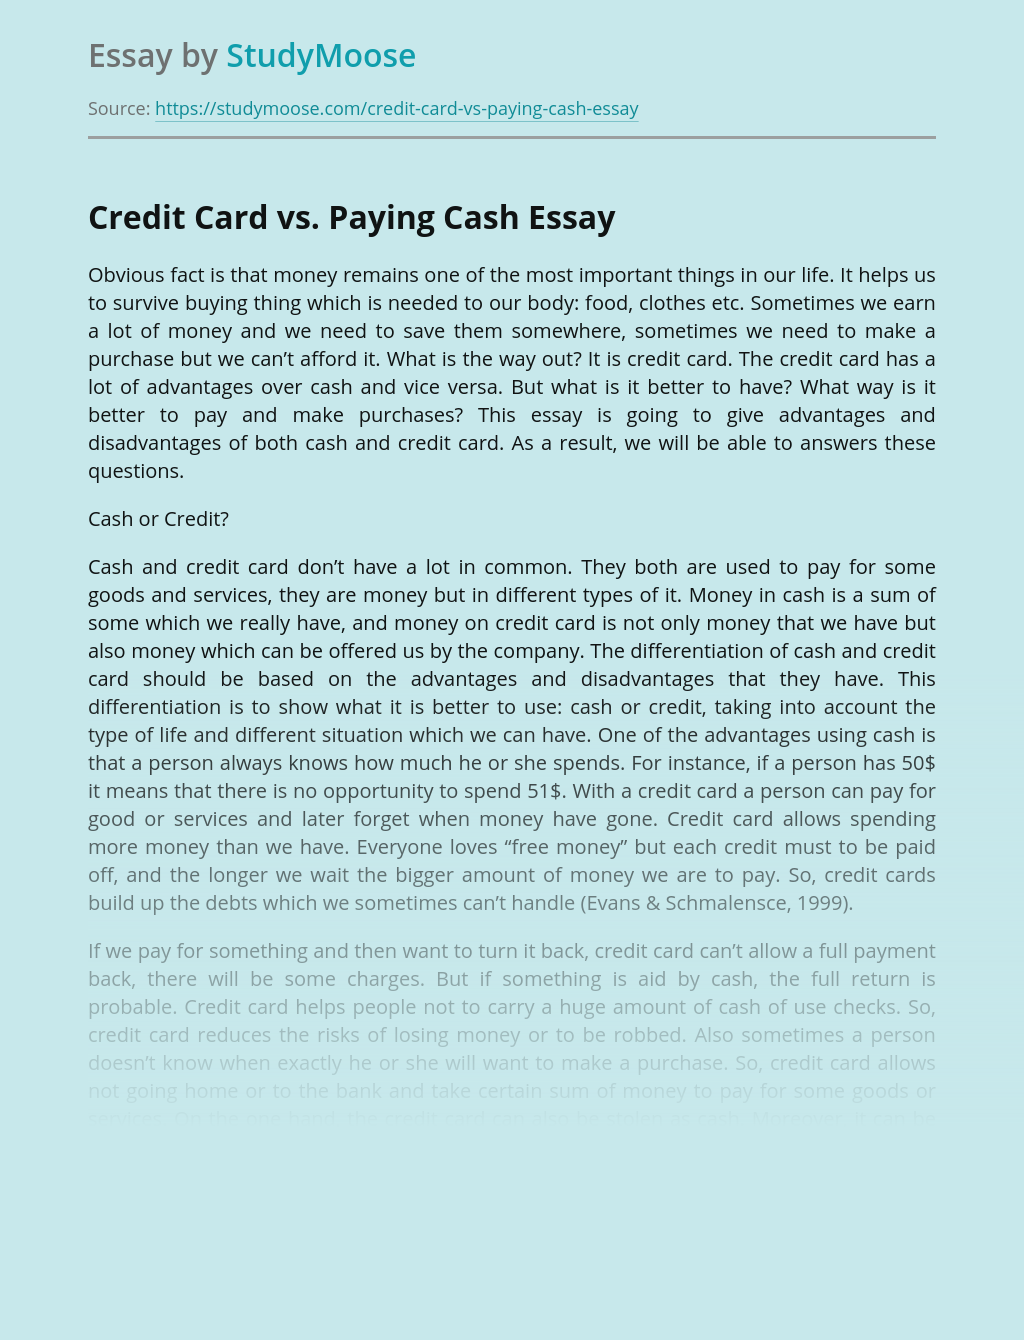 Credit Card vs. Paying Cash